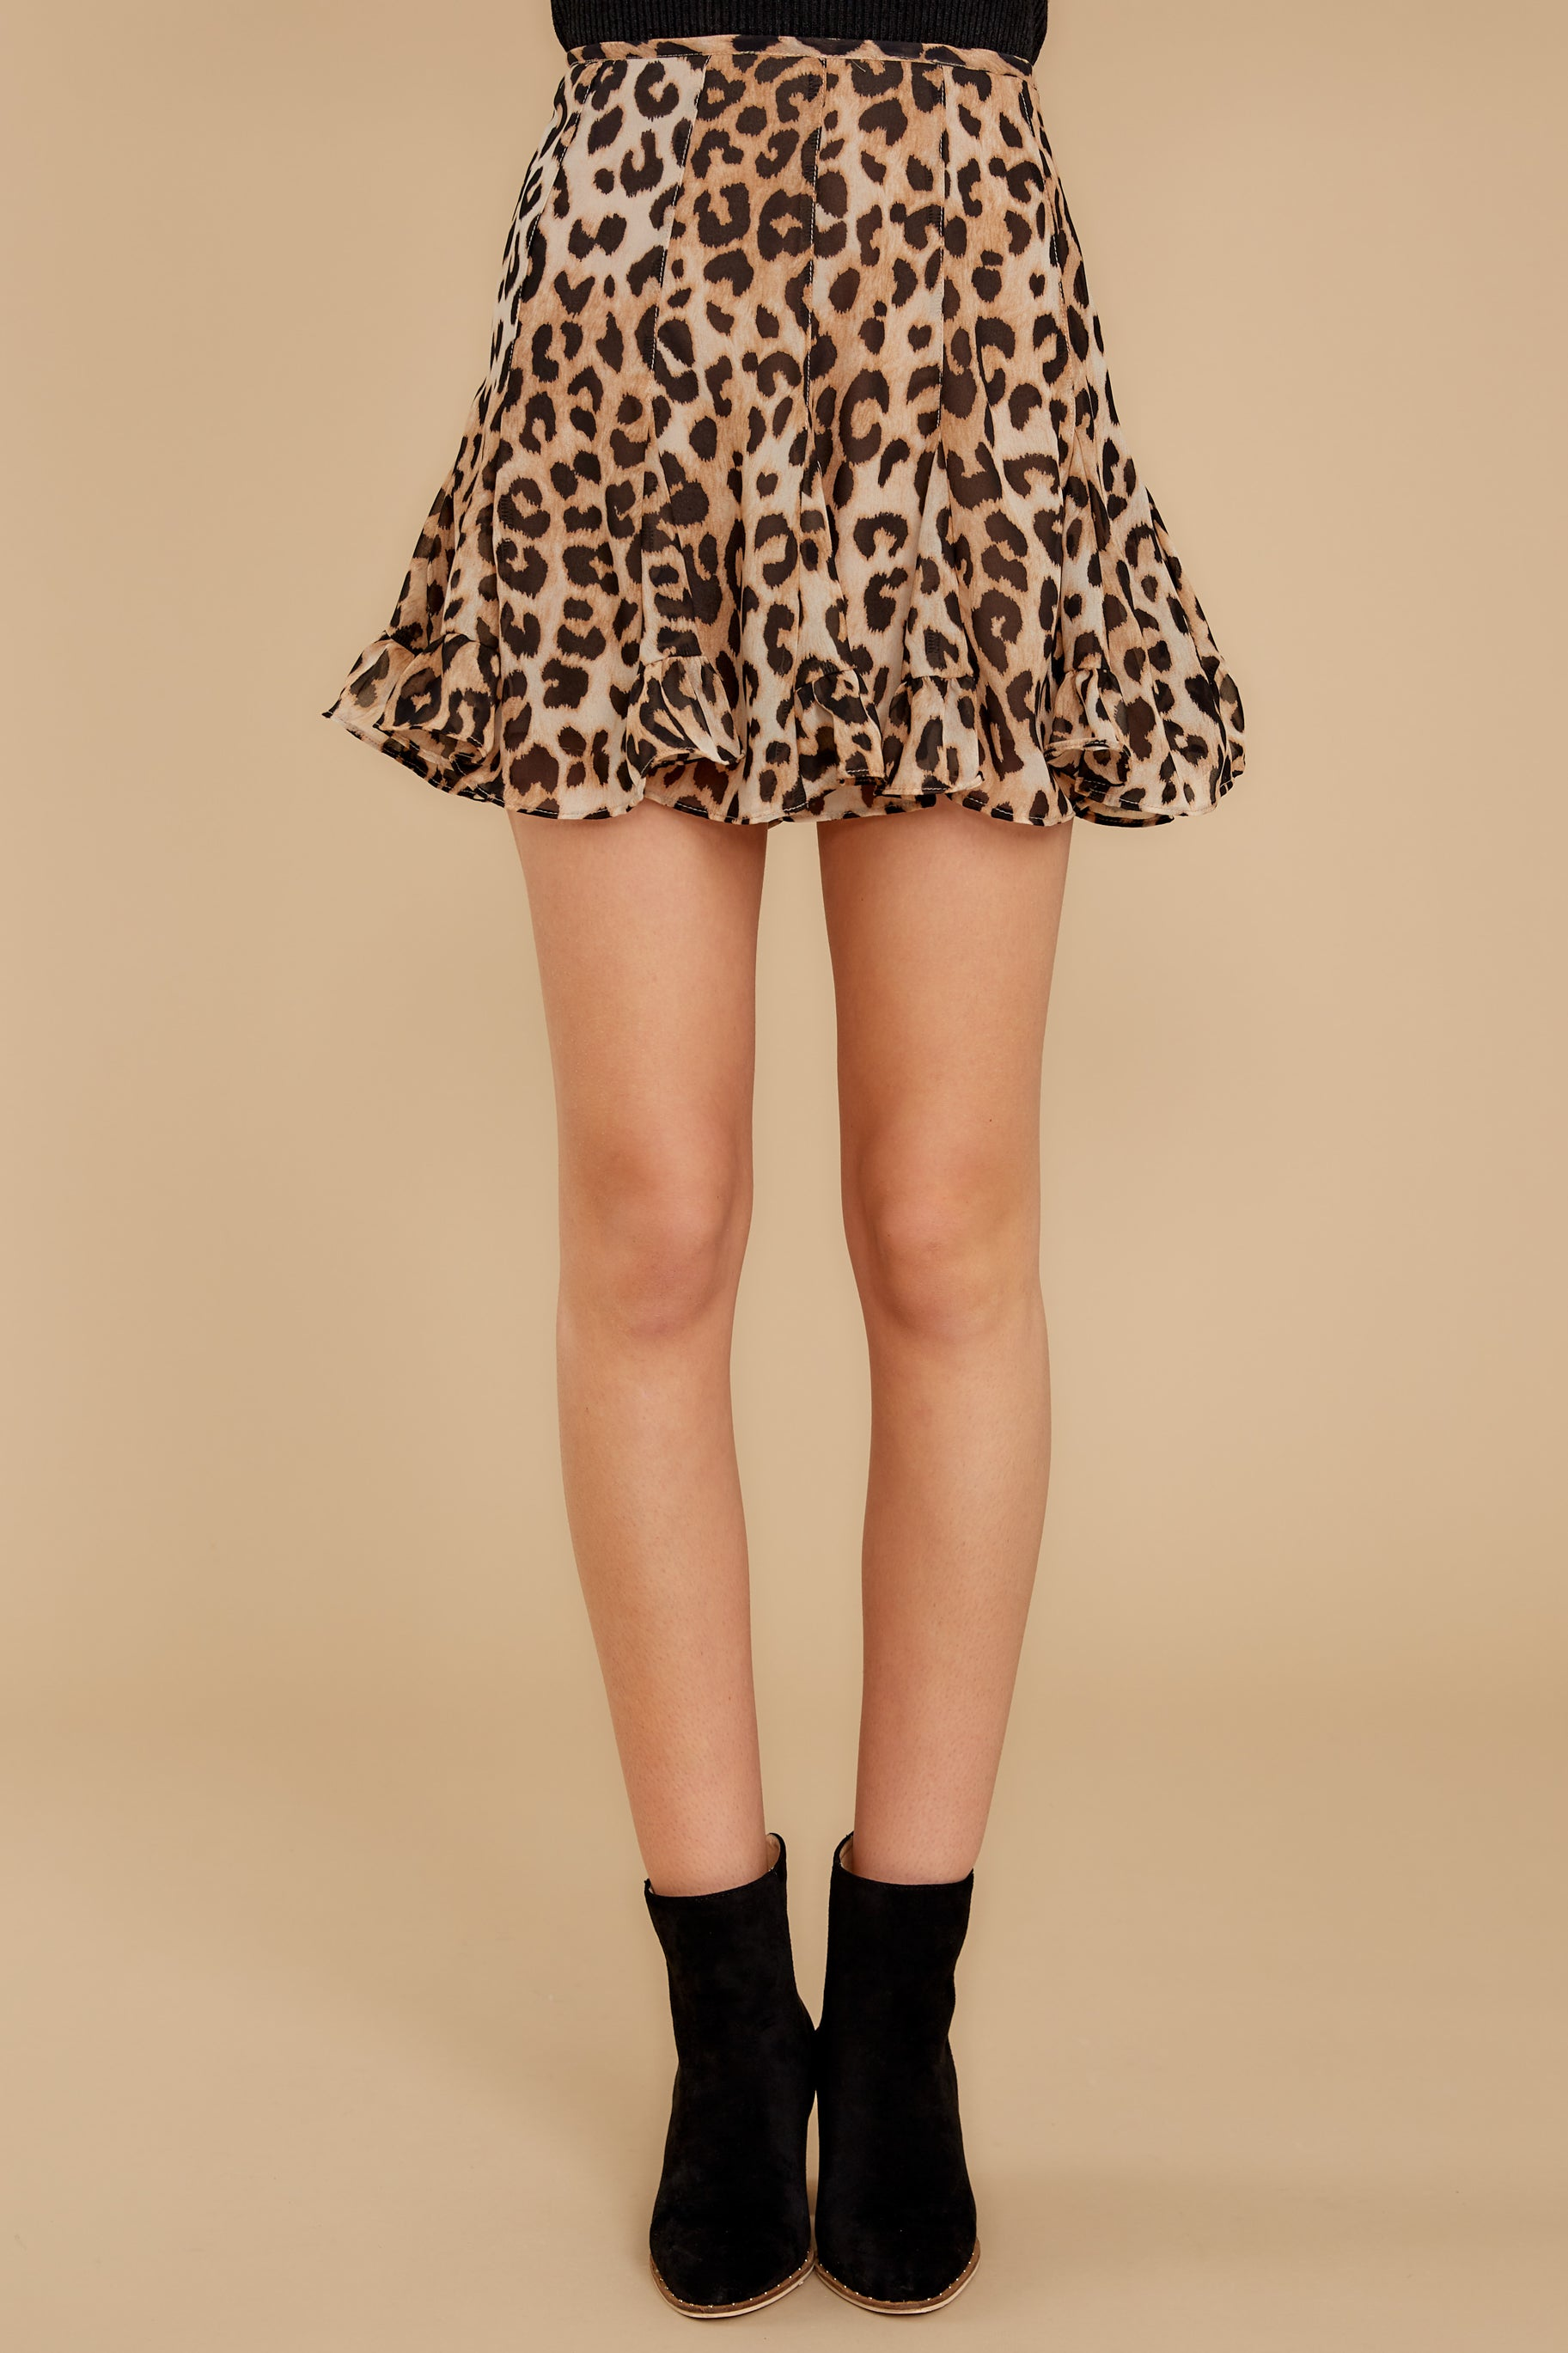 2 With Sass Leopard Print Skirt at reddress.com